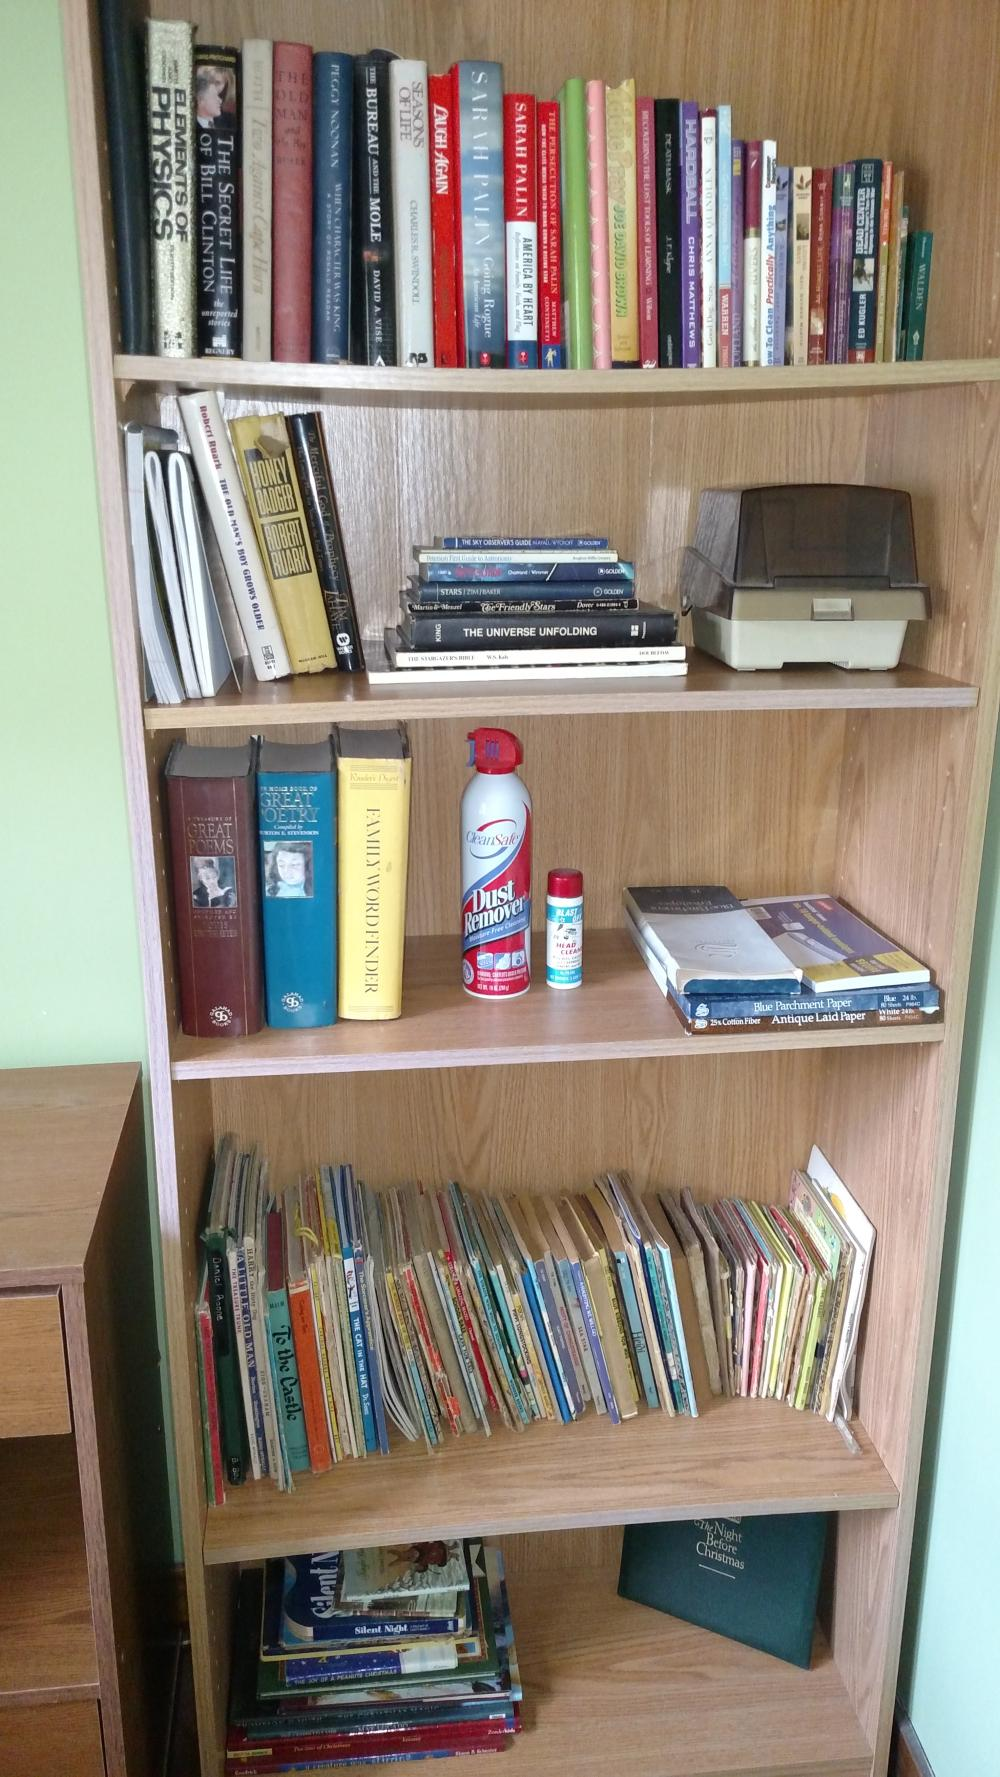 books-- mostly religious and childrens- books only